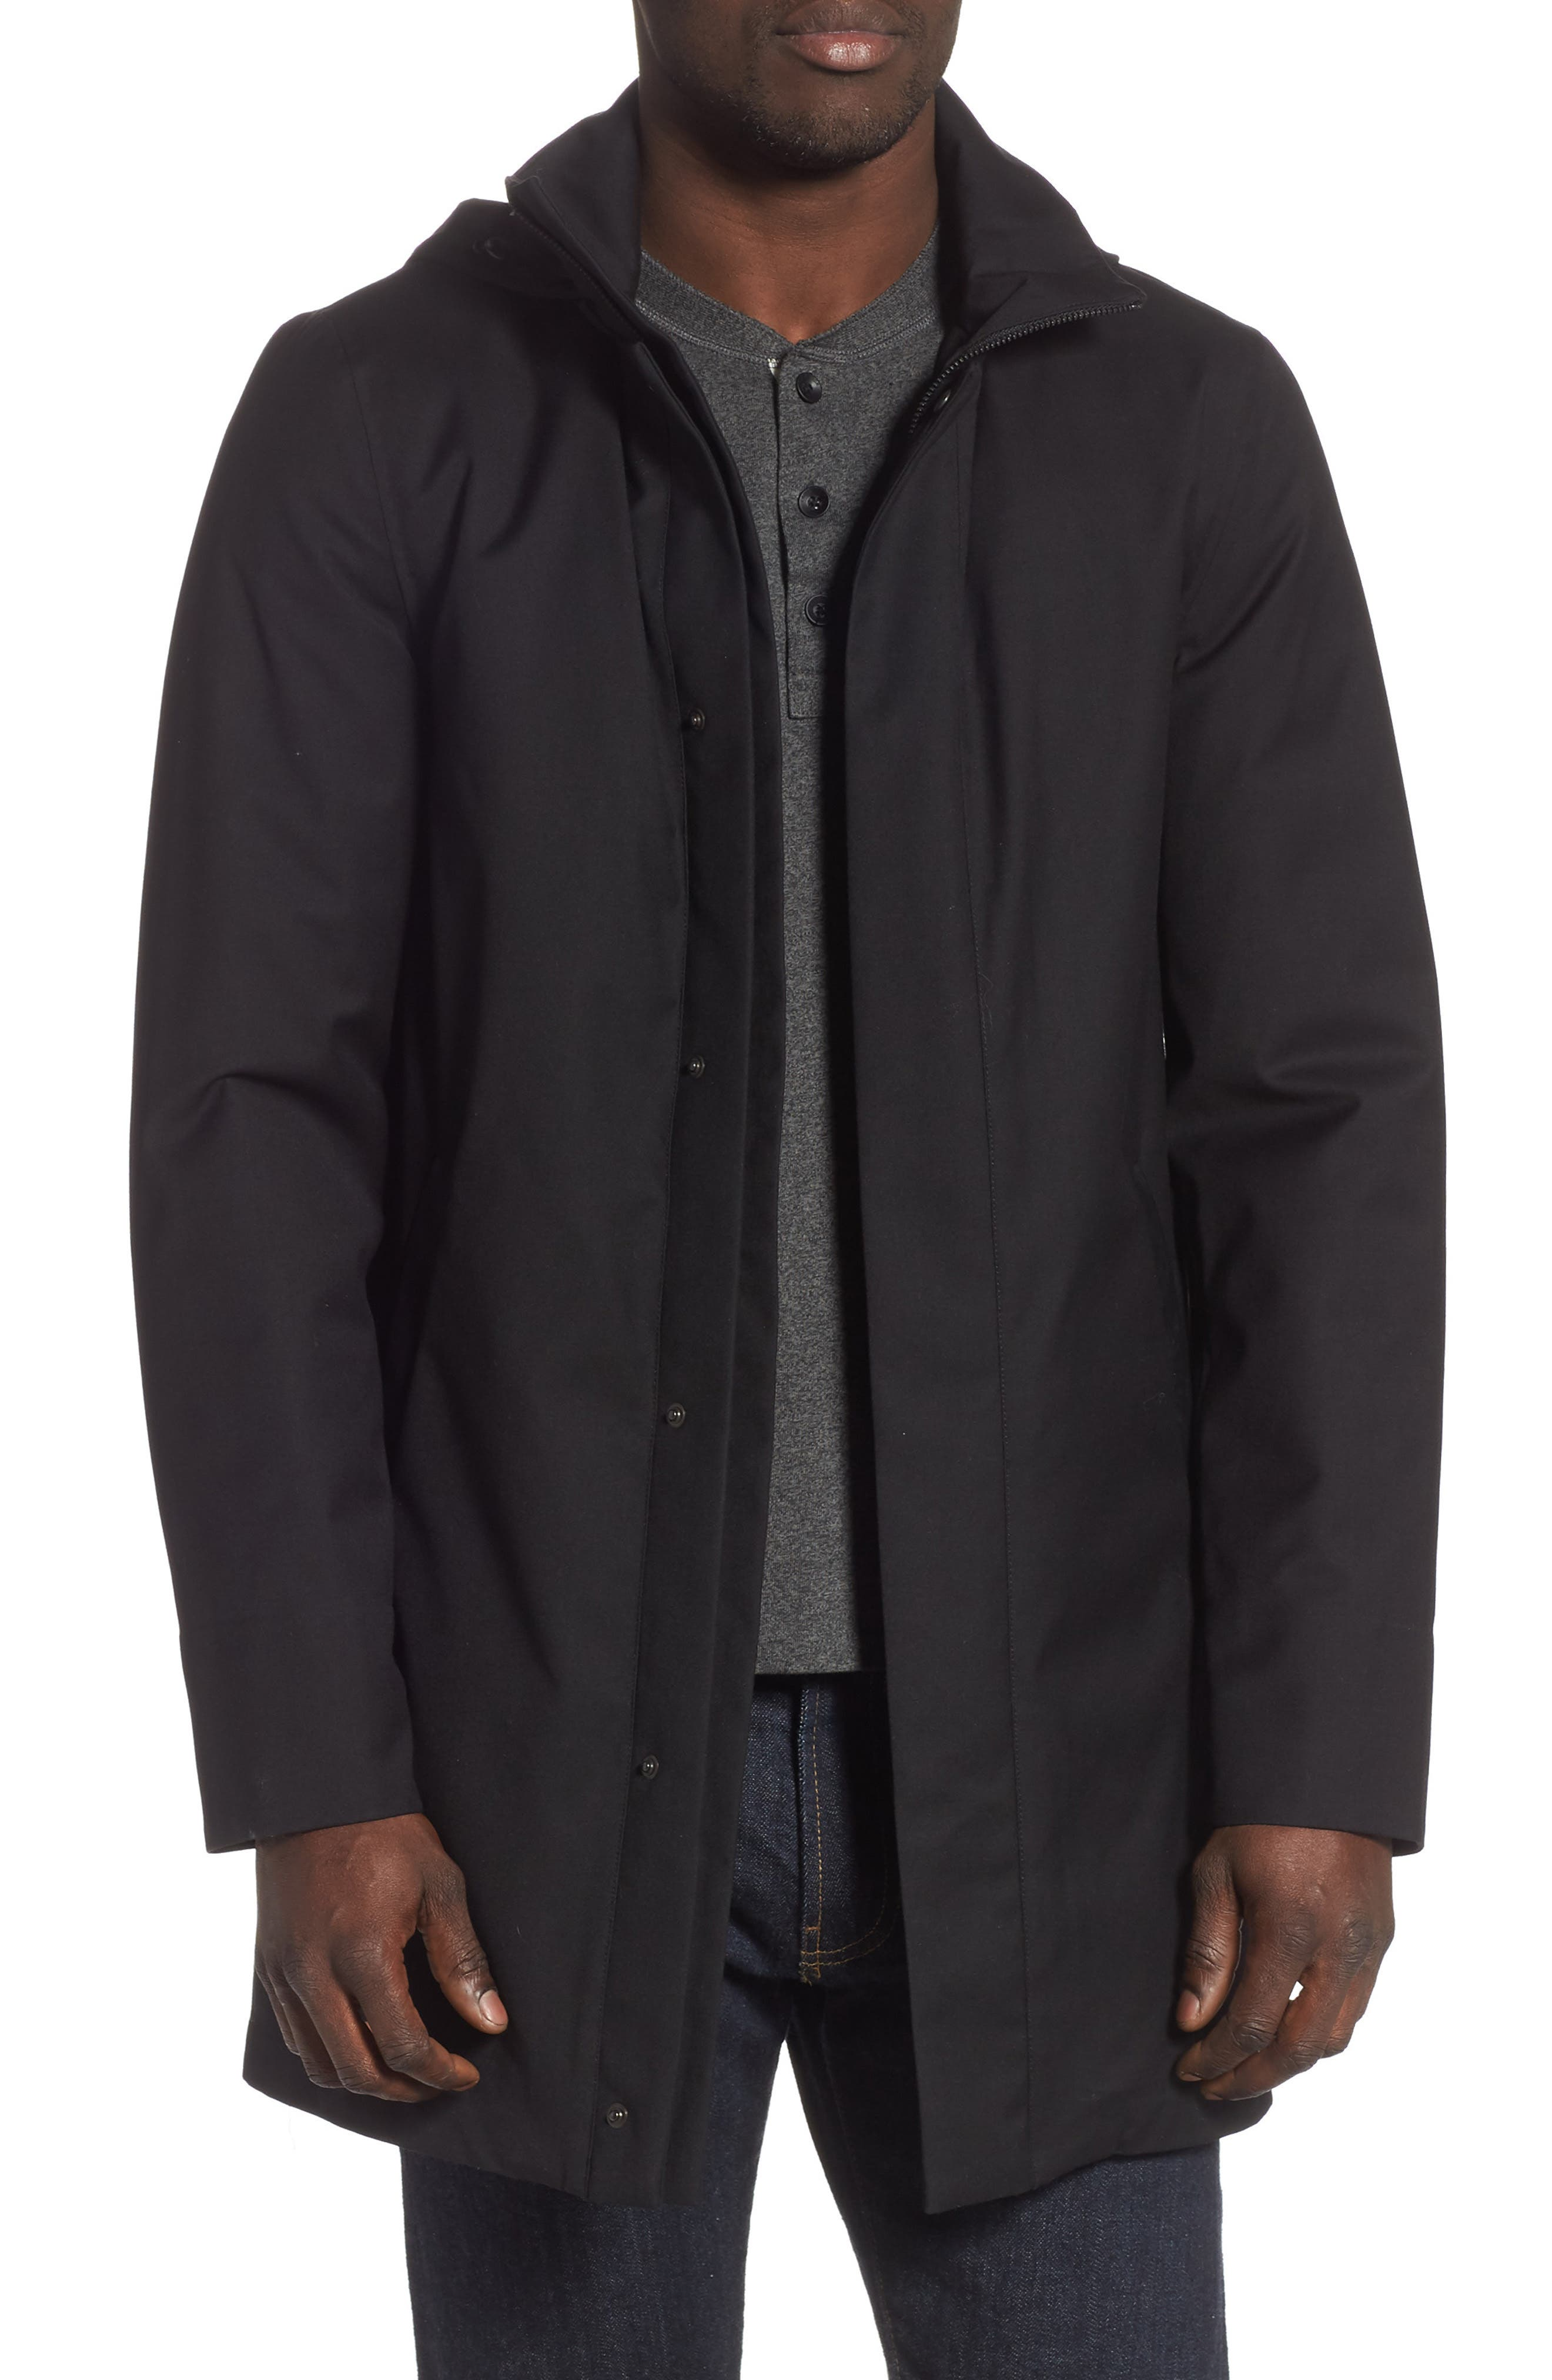 MACKAGE, Thorin-Z Jacket with Removable Down Lining, Main thumbnail 1, color, BLACK